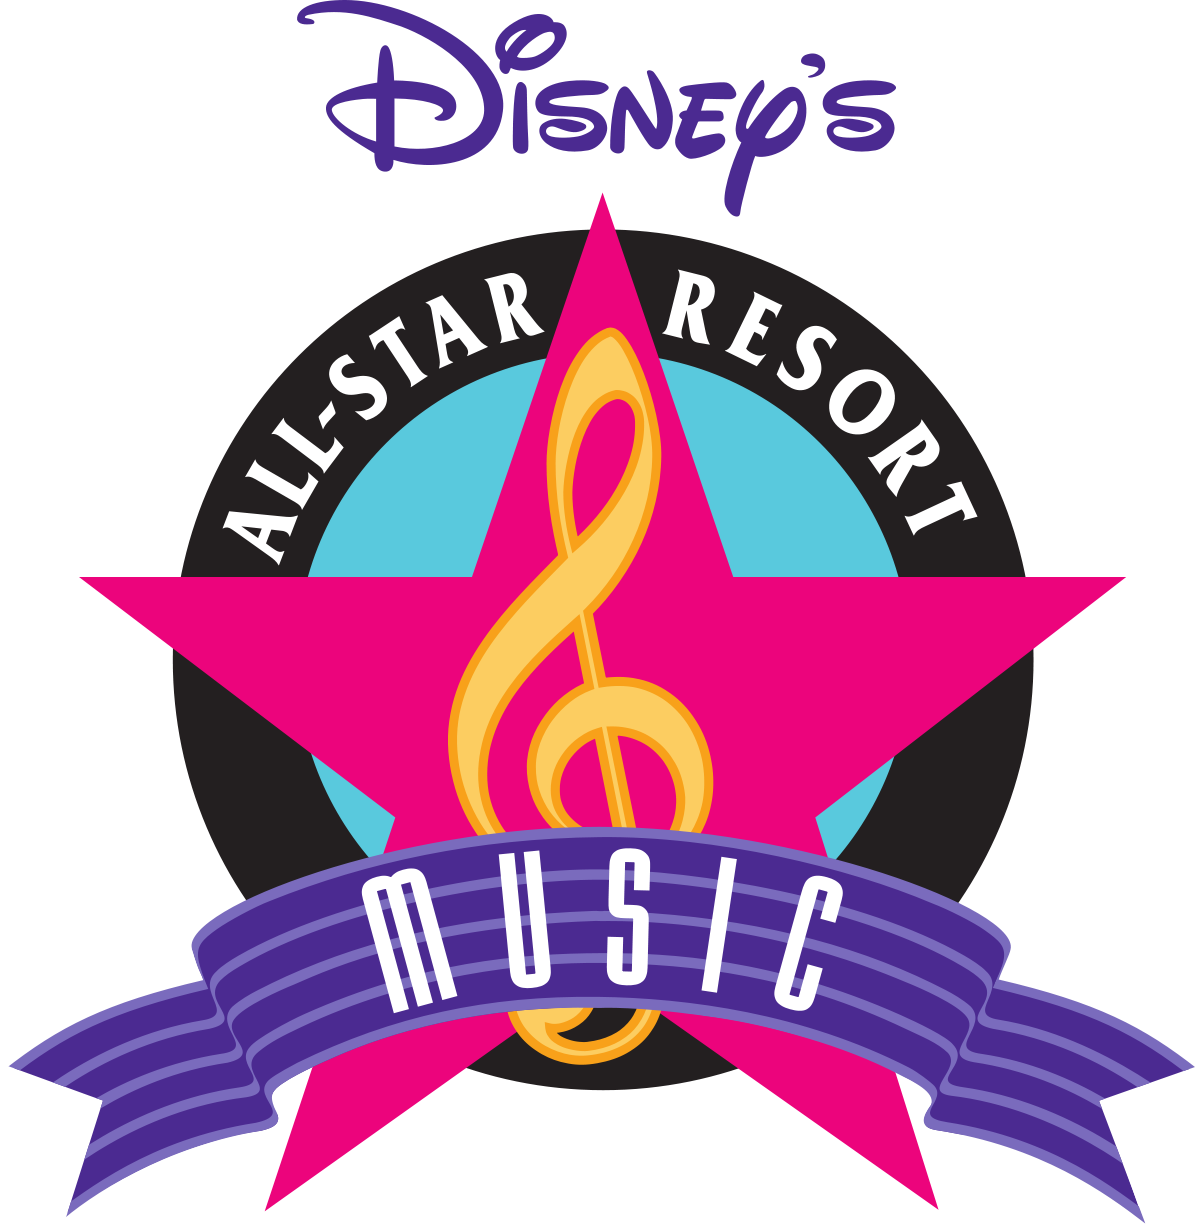 Broadway star clipart image library Disney's All-Star Music Resort - Wikipedia image library